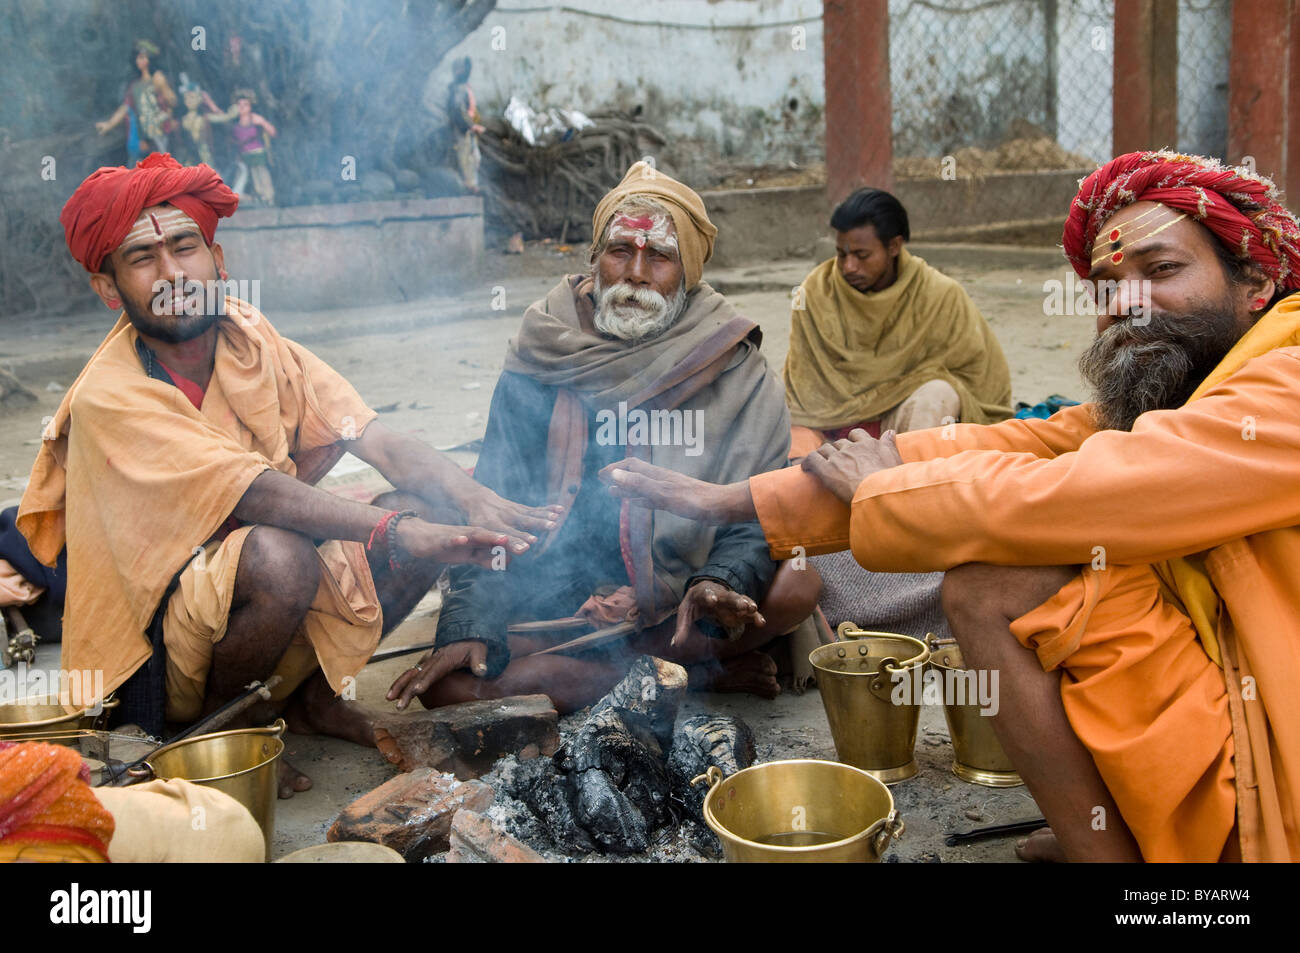 Early morning scene. Sadhus by the campfire. - Stock Image